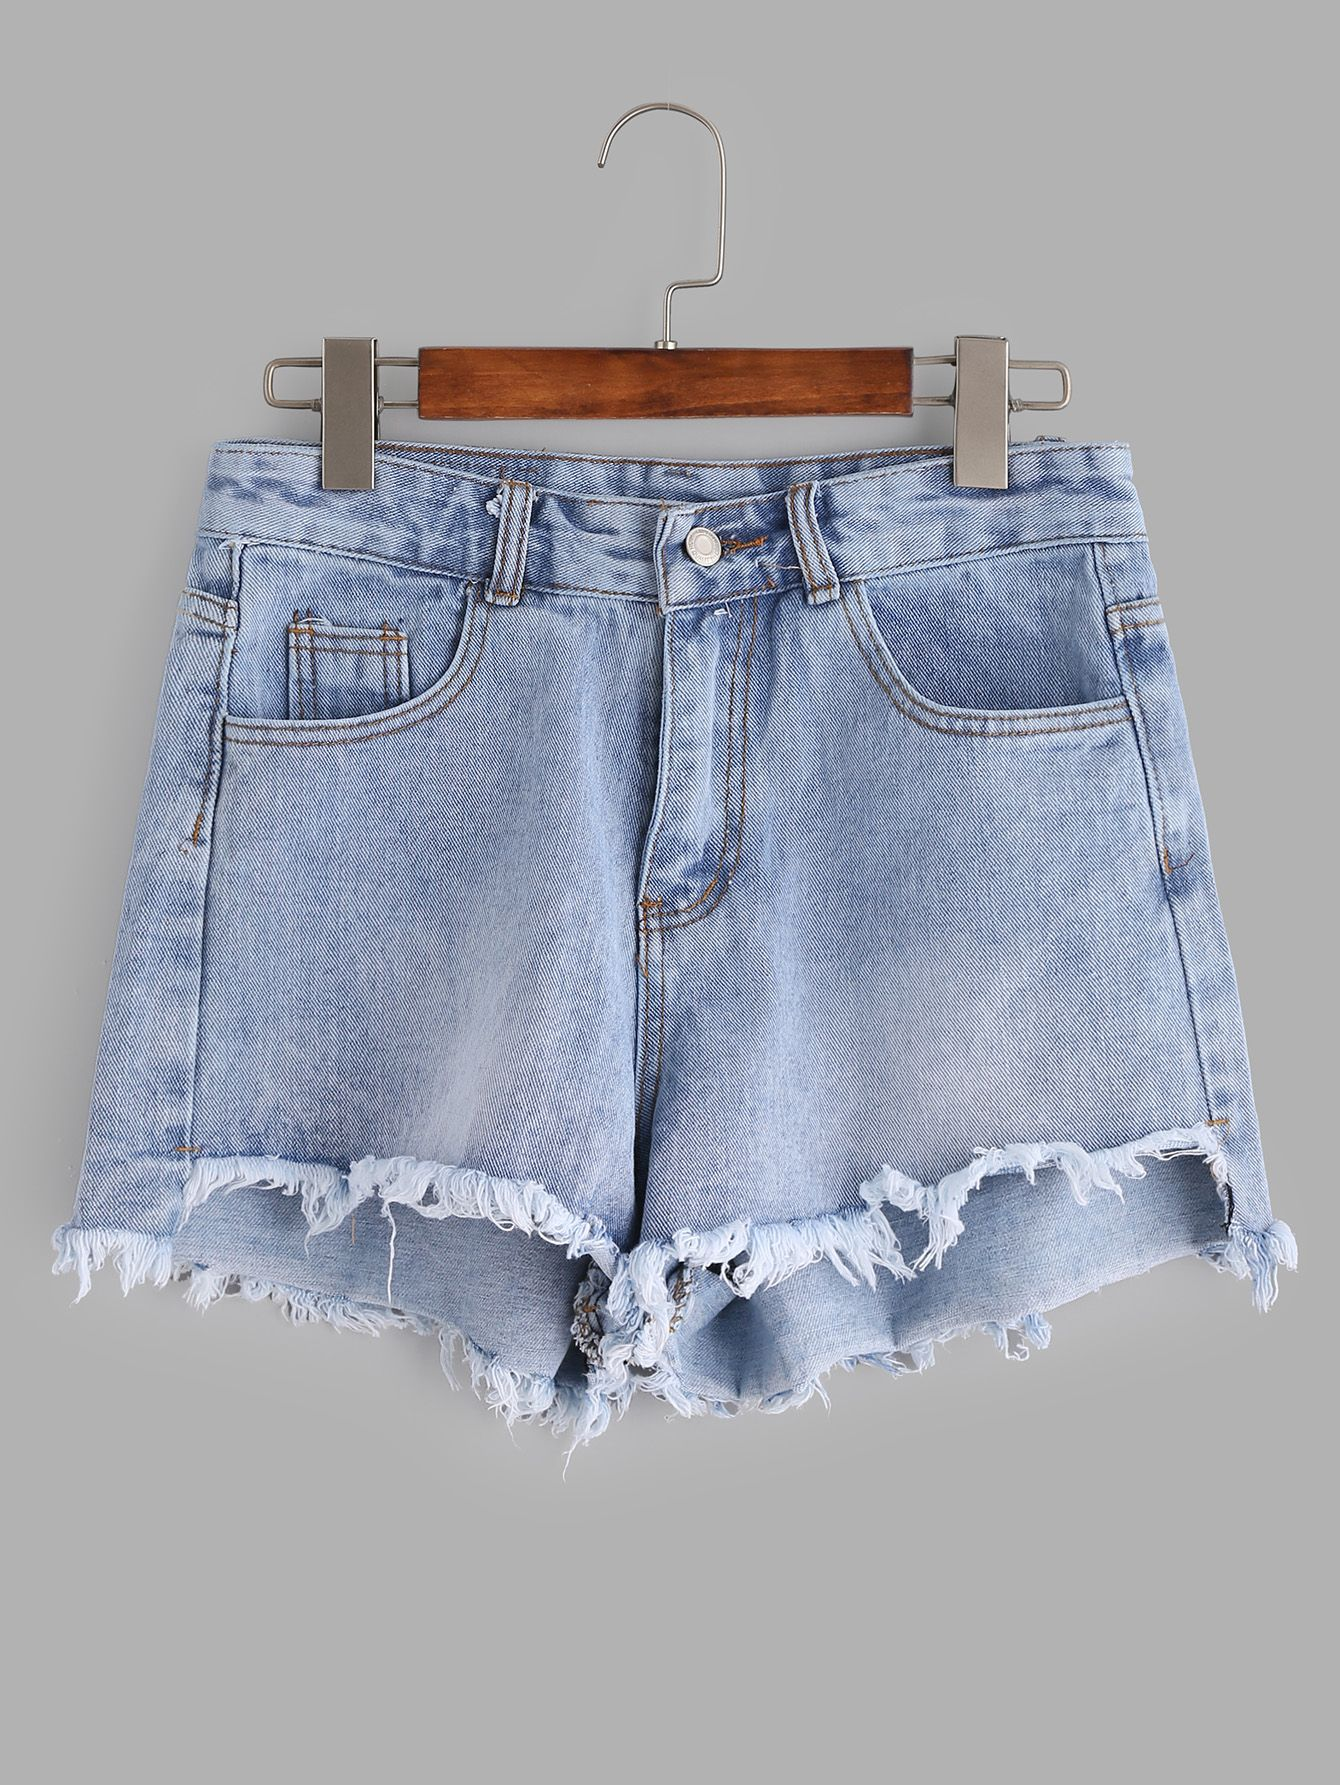 024026c060 Shop Light Blue Bleached Raw Hem Denim Shorts online. SheIn offers Light  Blue Bleached Raw Hem Denim Shorts & more to fit your fashionable needs.